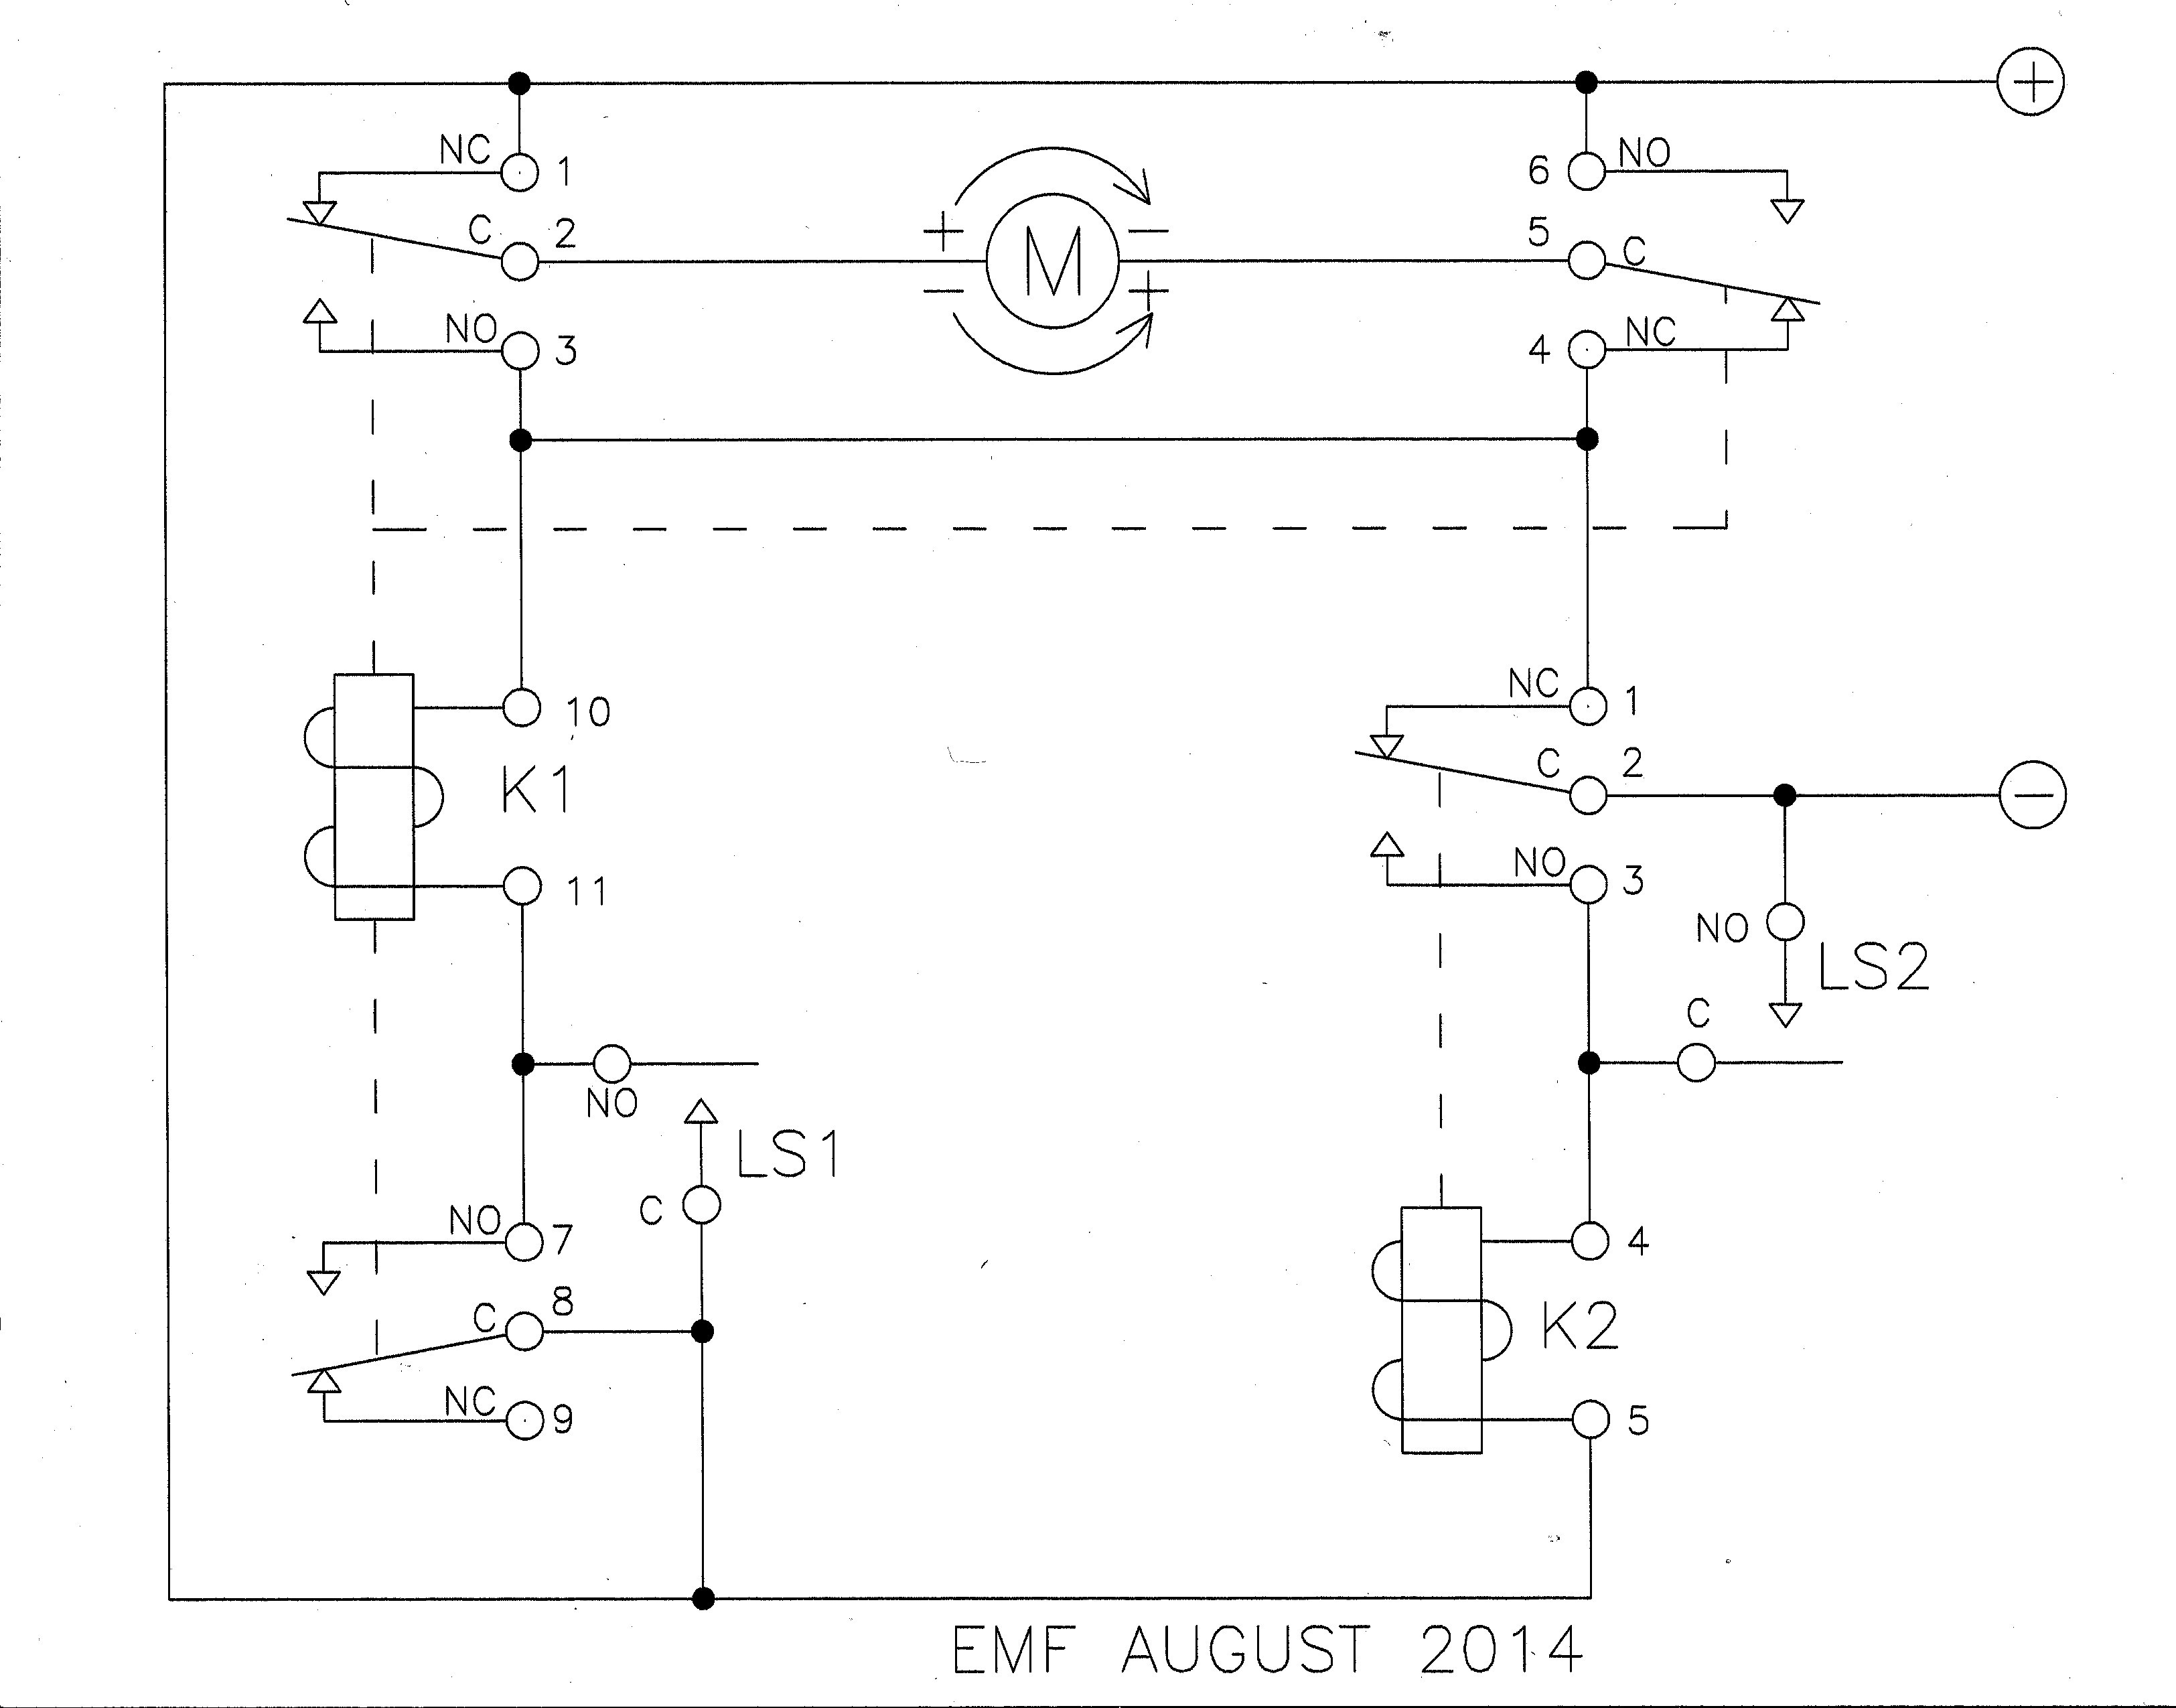 Dpdt circuit diagram wiring diagrams schematics dpdt switch wiring diagram unique wiring diagram image dpdt circuit diagram spst circuit diagram spst relay asfbconference2016 Images